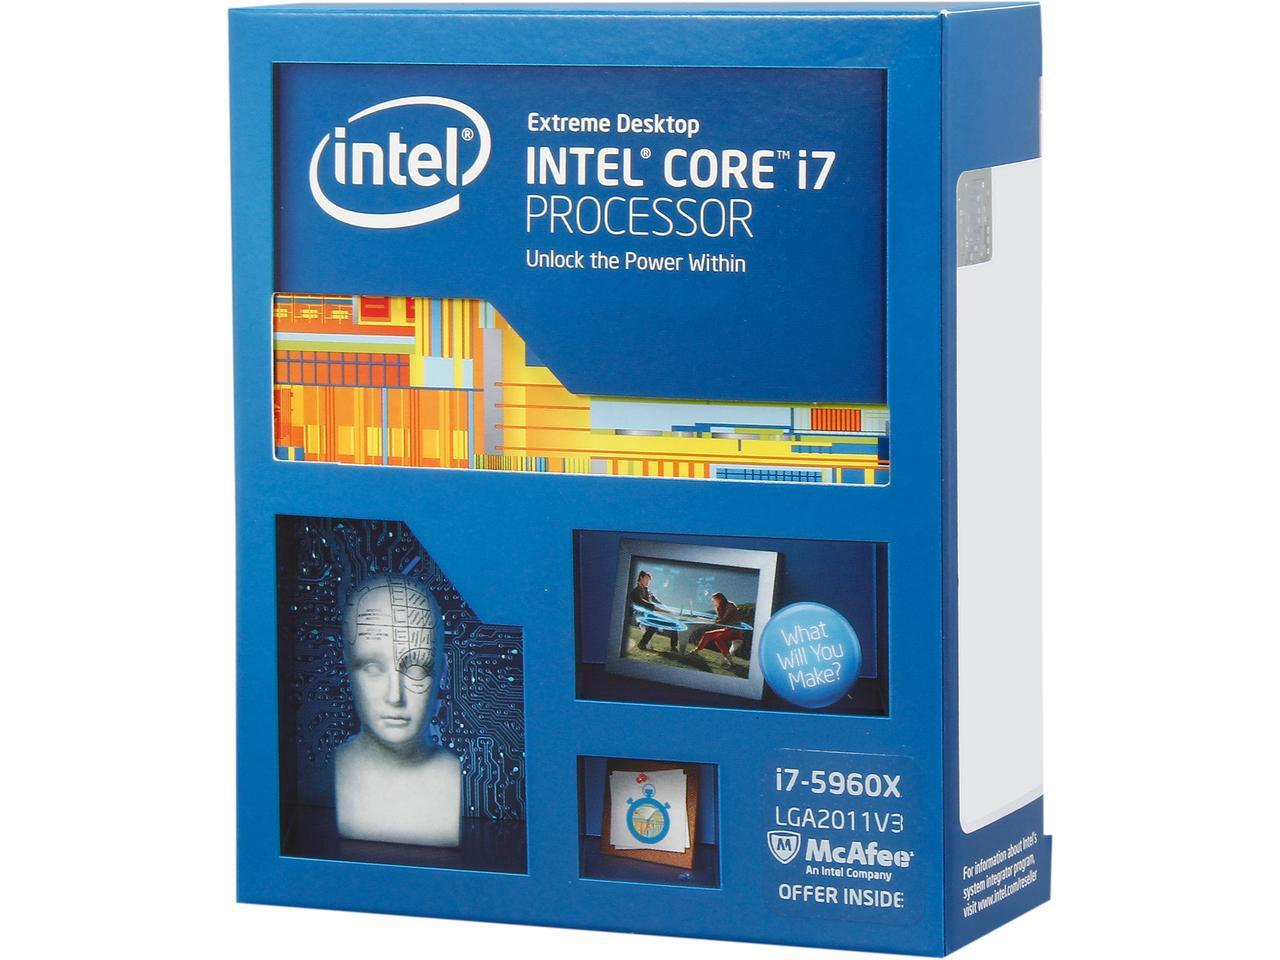 # Intel Core i7-5960X Extreme Edition CPU 8C16T # LGA 2011-v3